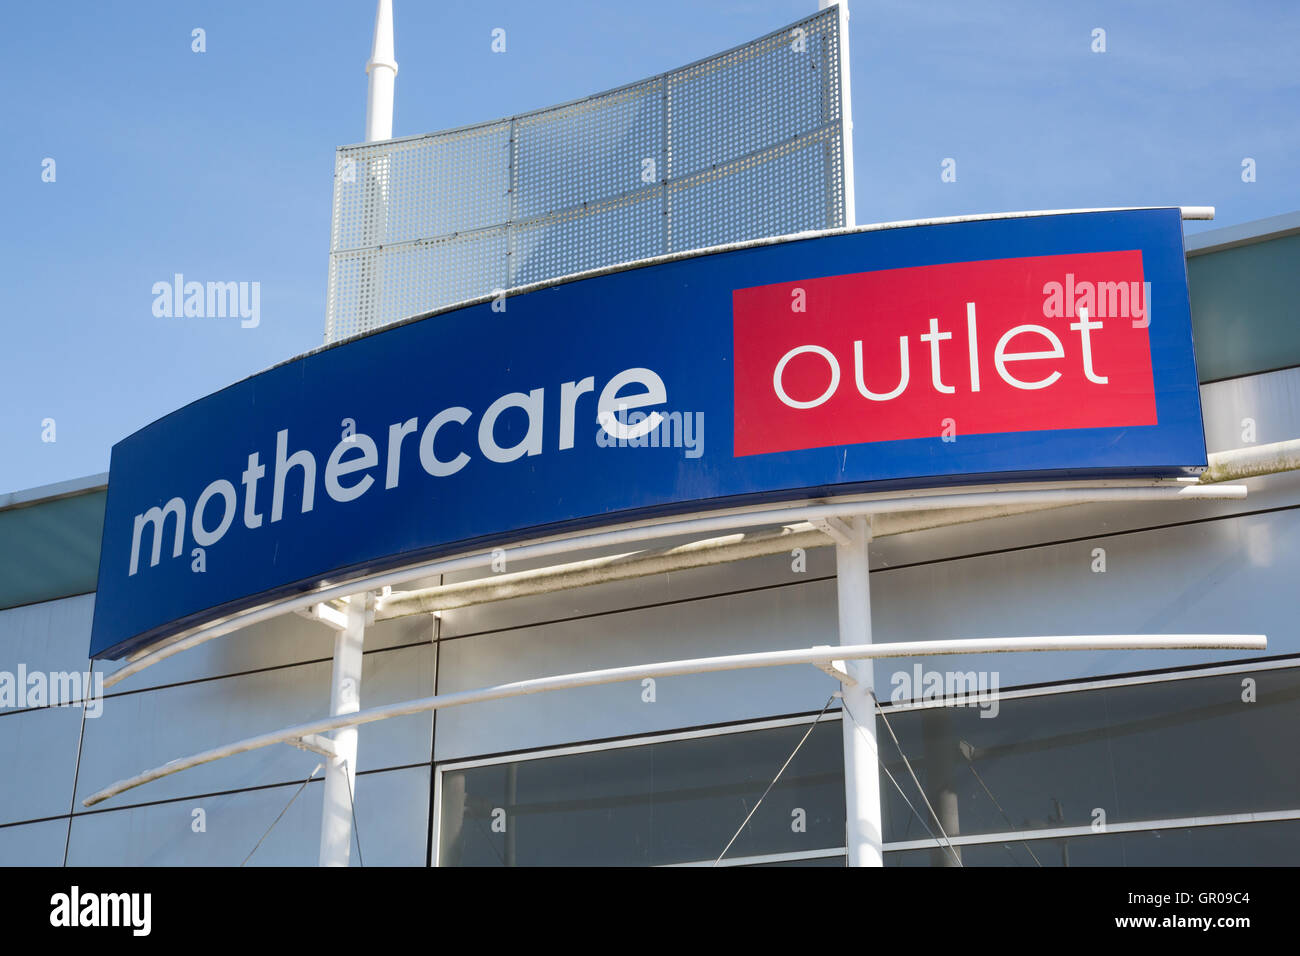 Mothercare outlet signage - Stock Image